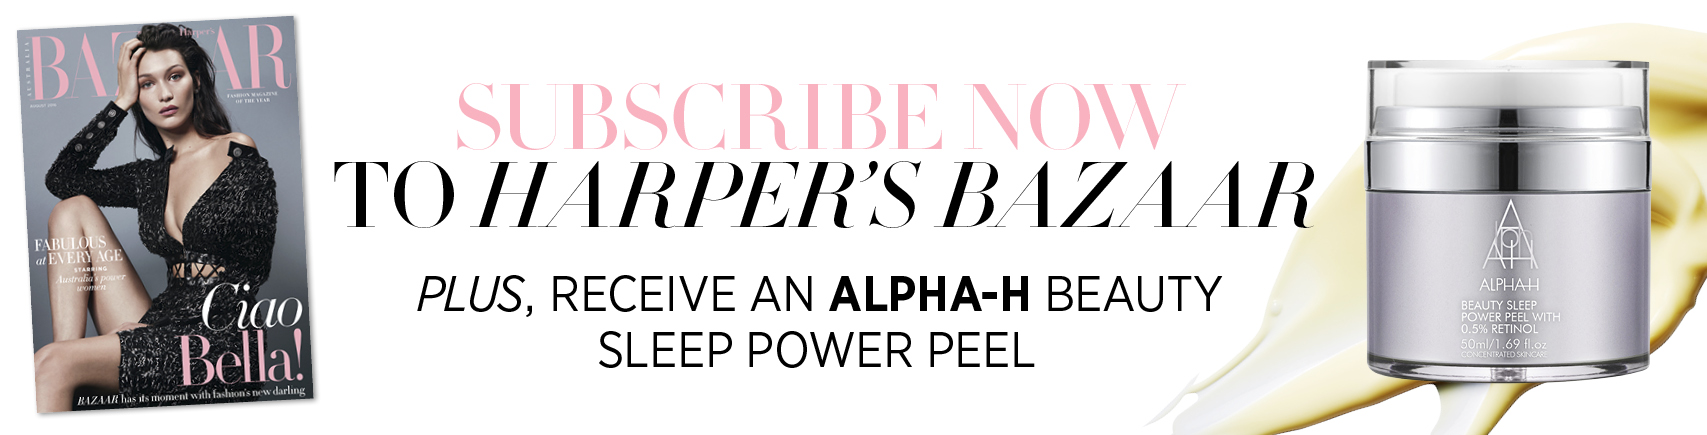 Subscribe to Harper's Bazaar